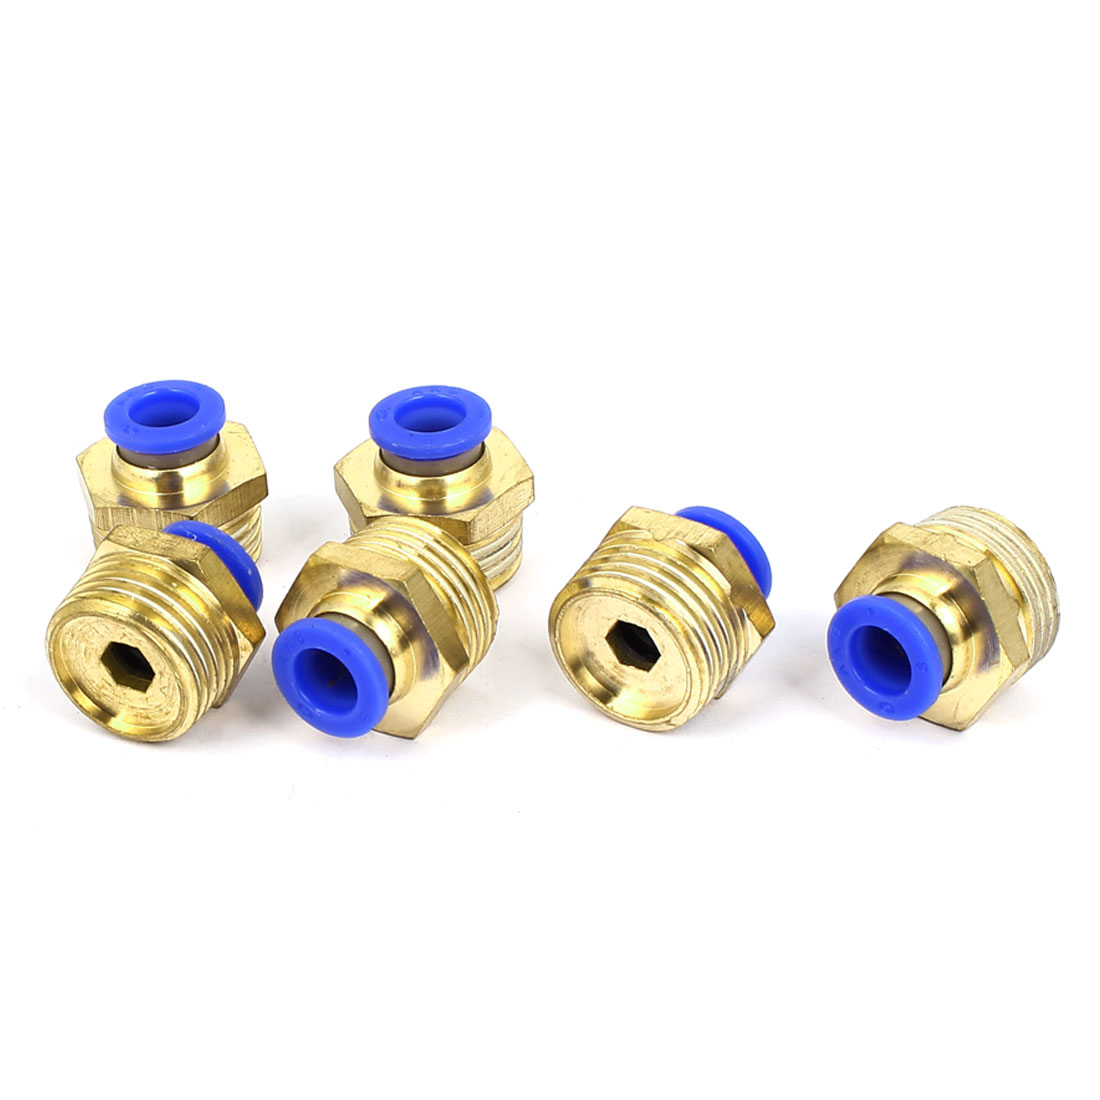 1/2BSP Male Thread 8mm Push In Joint Pneumatic Connector Quick Fittings 6pcs